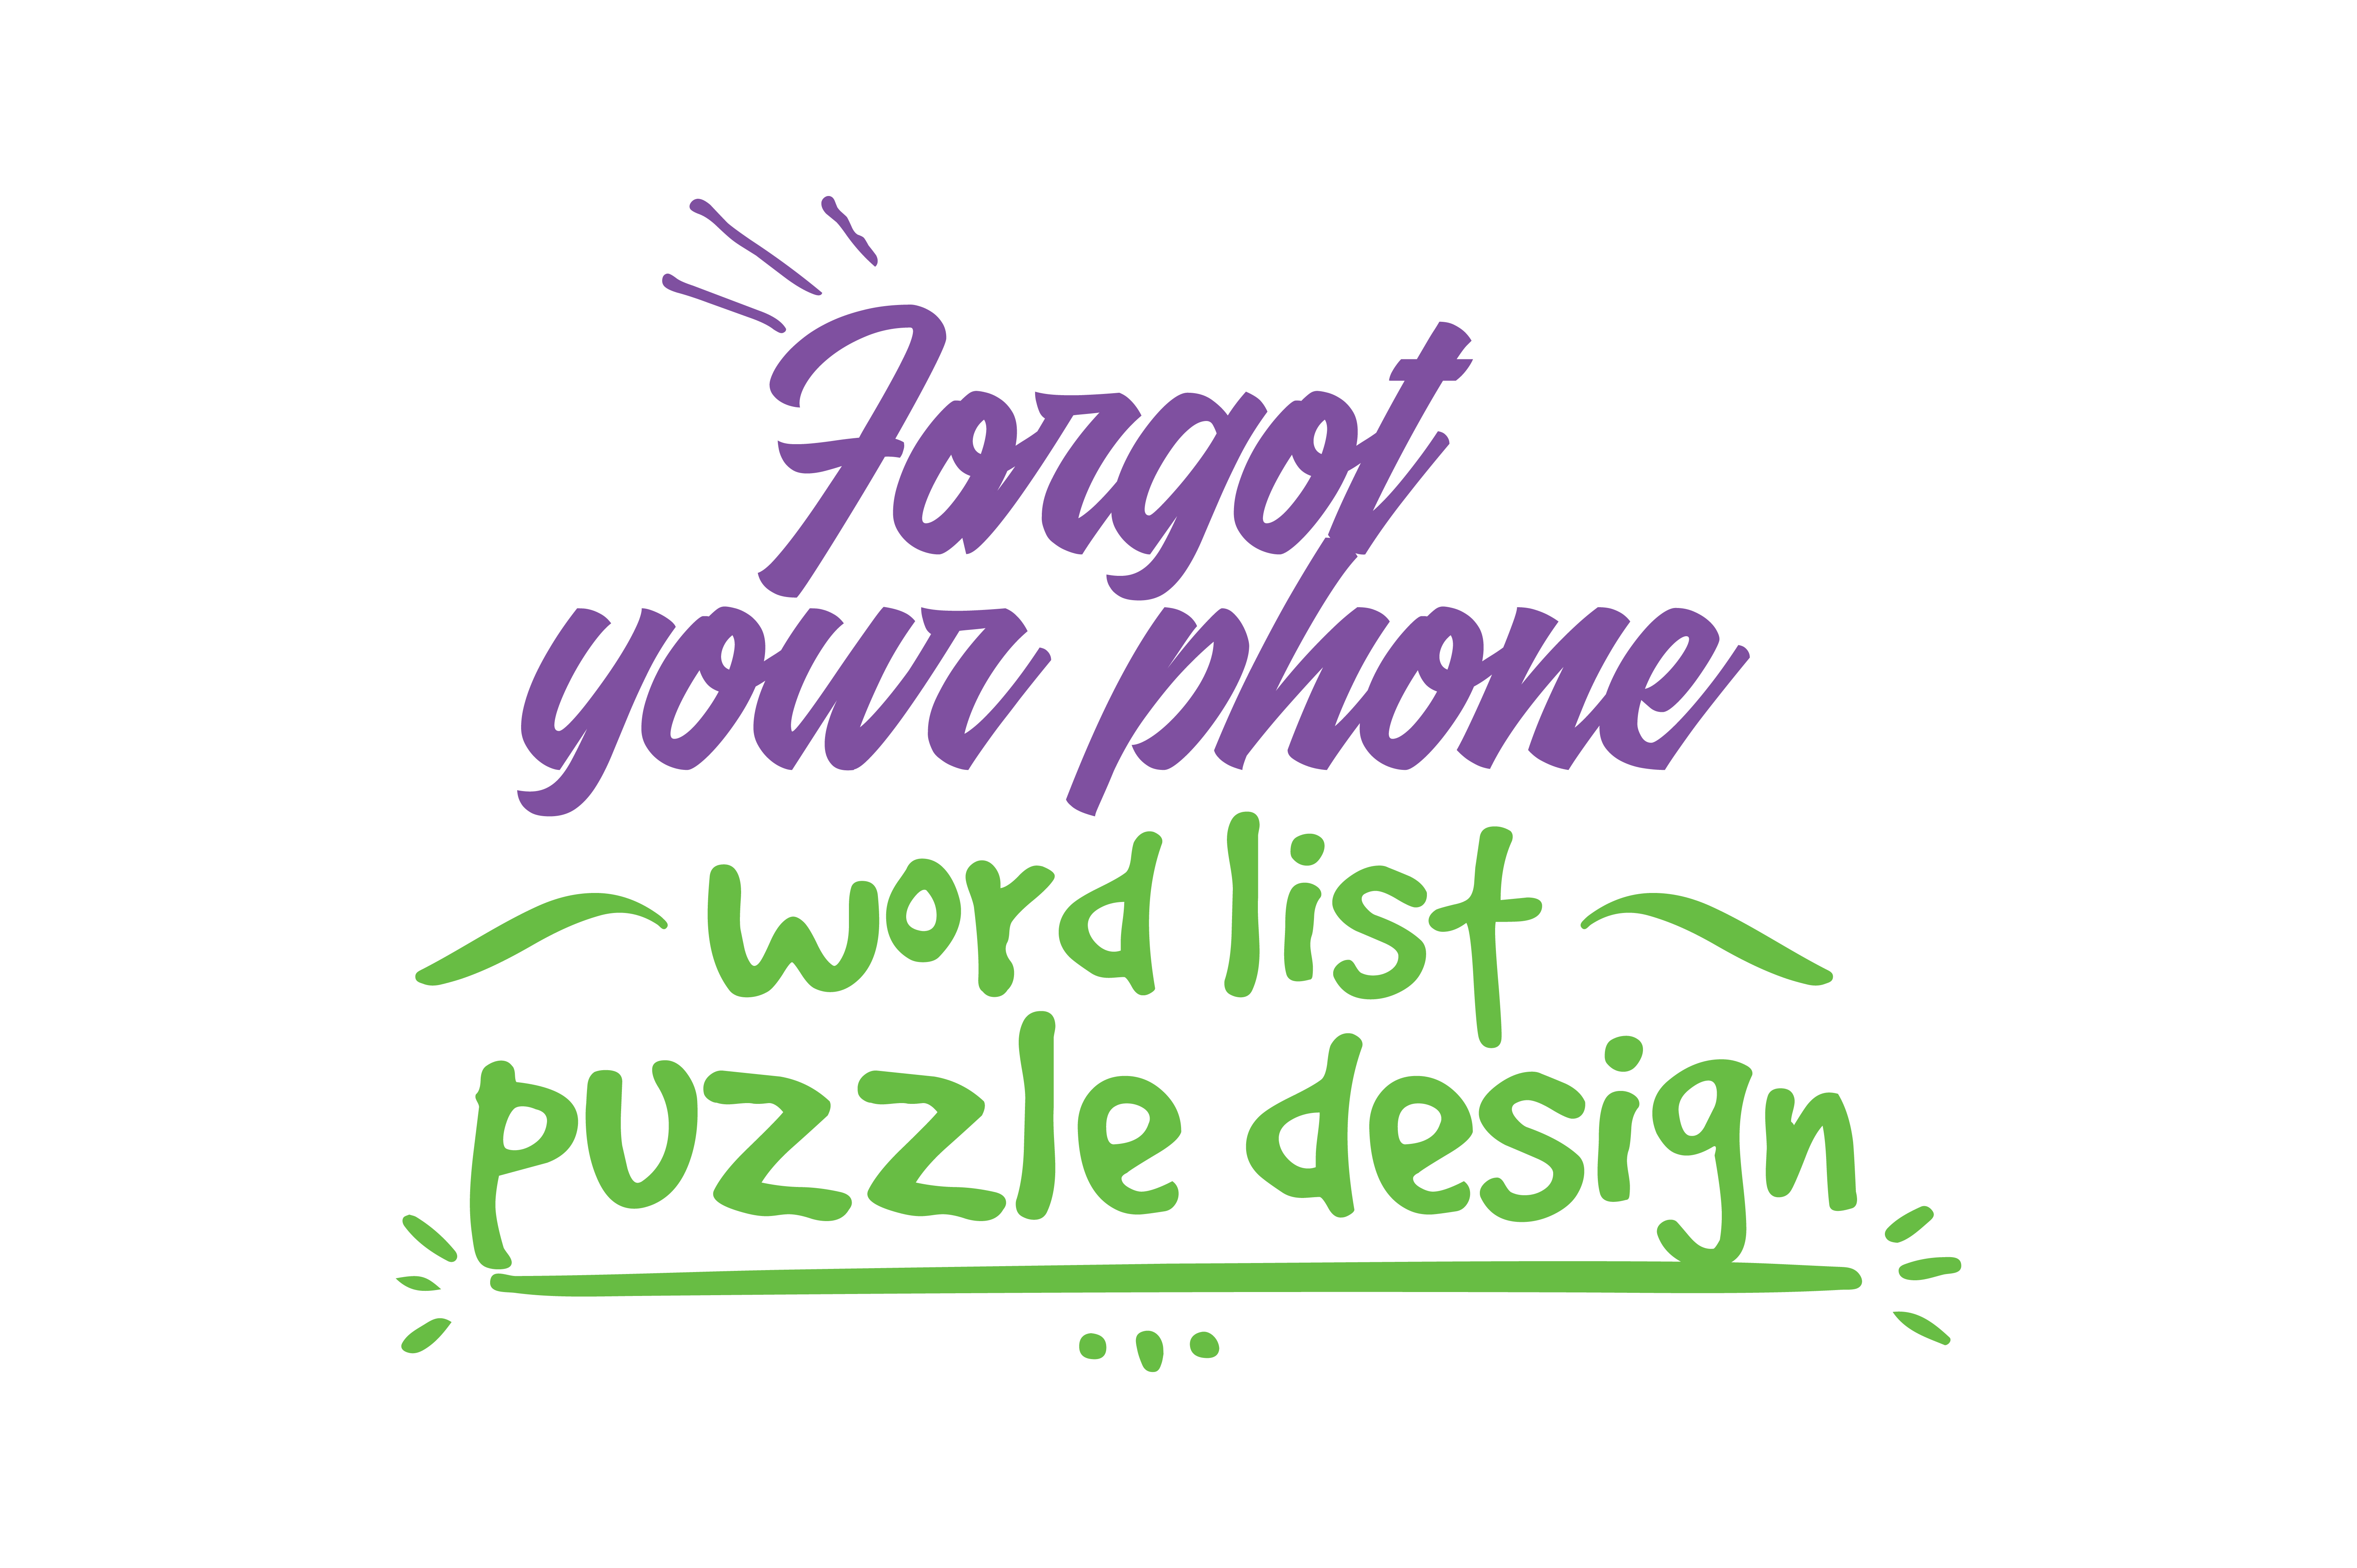 Forgot Your Phone Word List Puzzle Design Quote SVG Cut